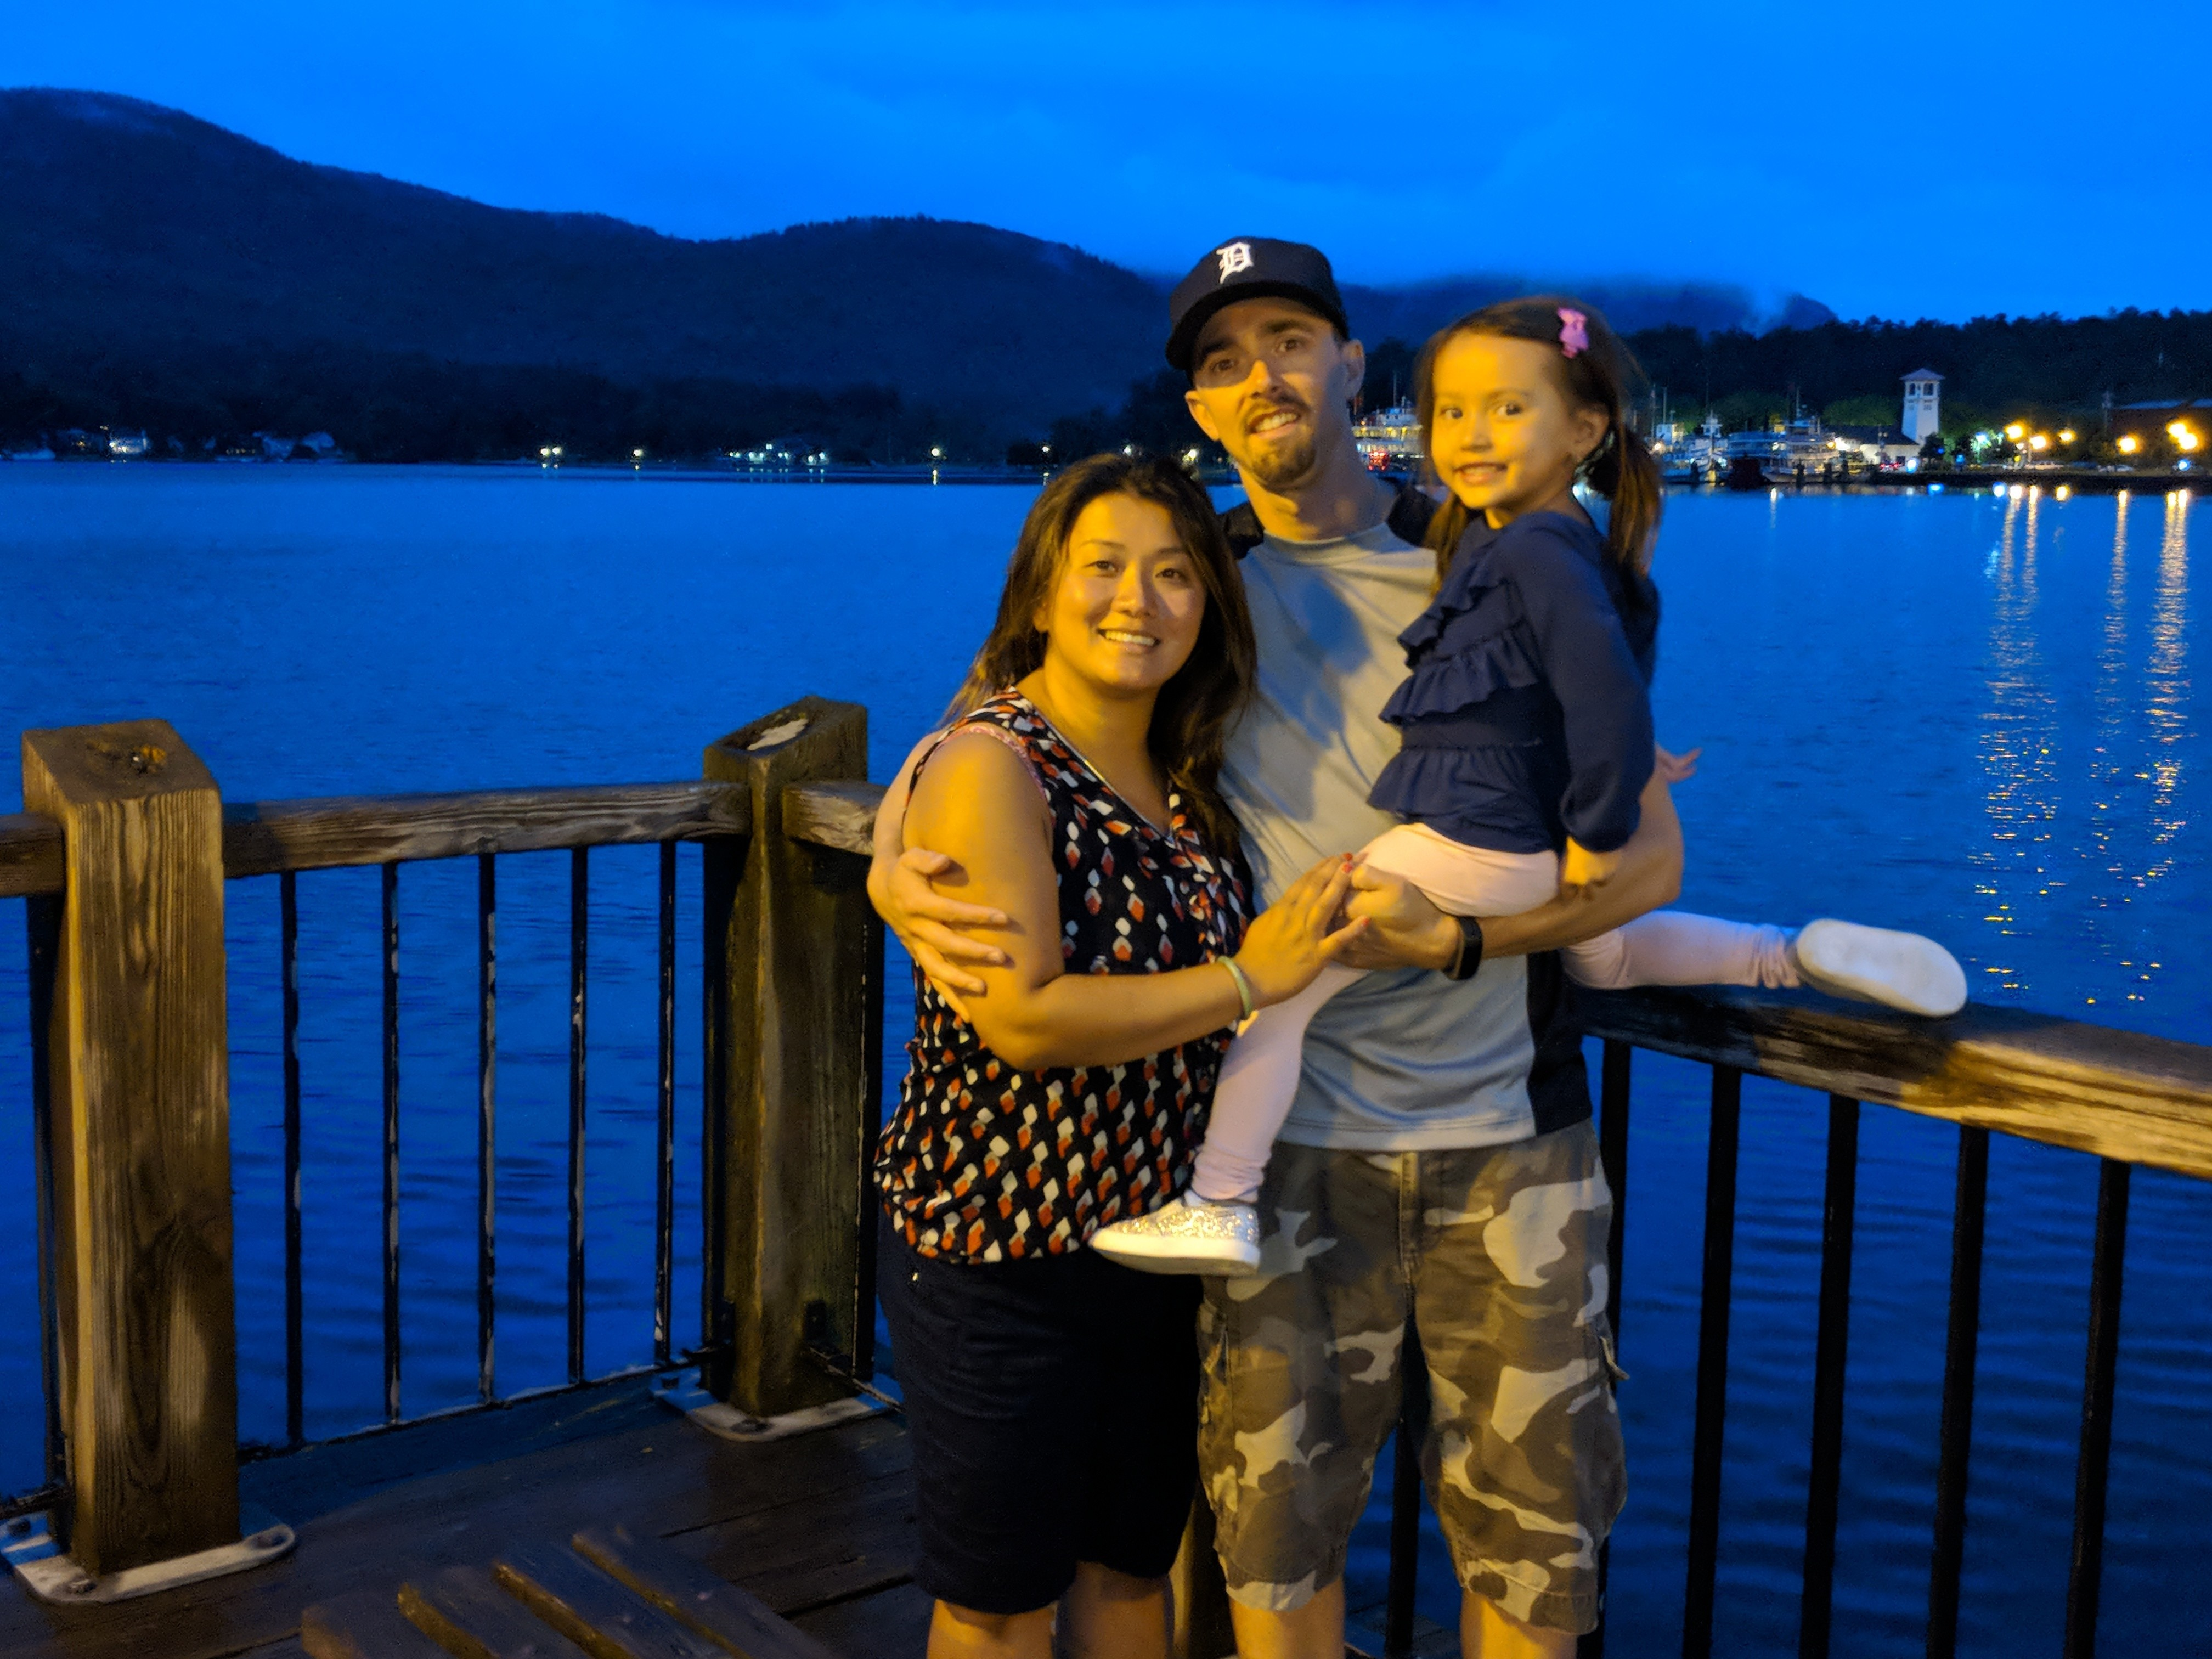 Josh de Bock, shown here with his wife, Loan, and daughter Mai-Linh, joined the OPP in 2010. He was 38 years old when he died by suicide last August. (Submitted by Loan de Bock)